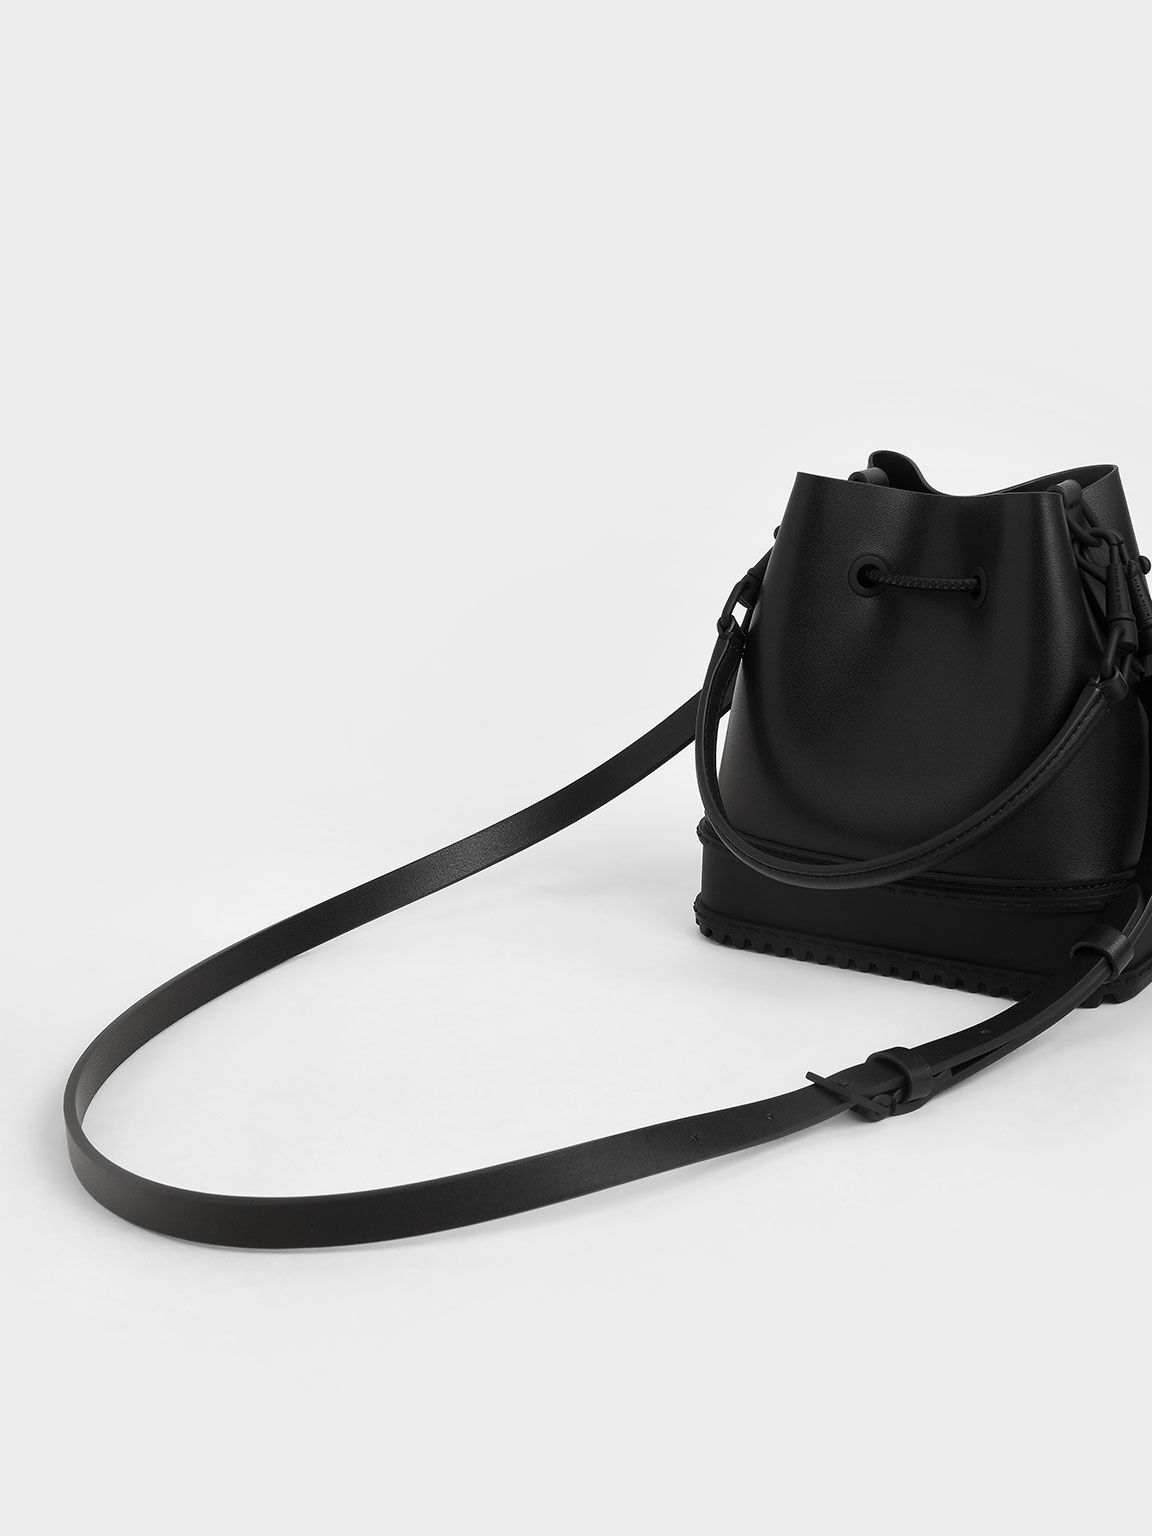 Drawstring Bucket Bag, Black, hi-res